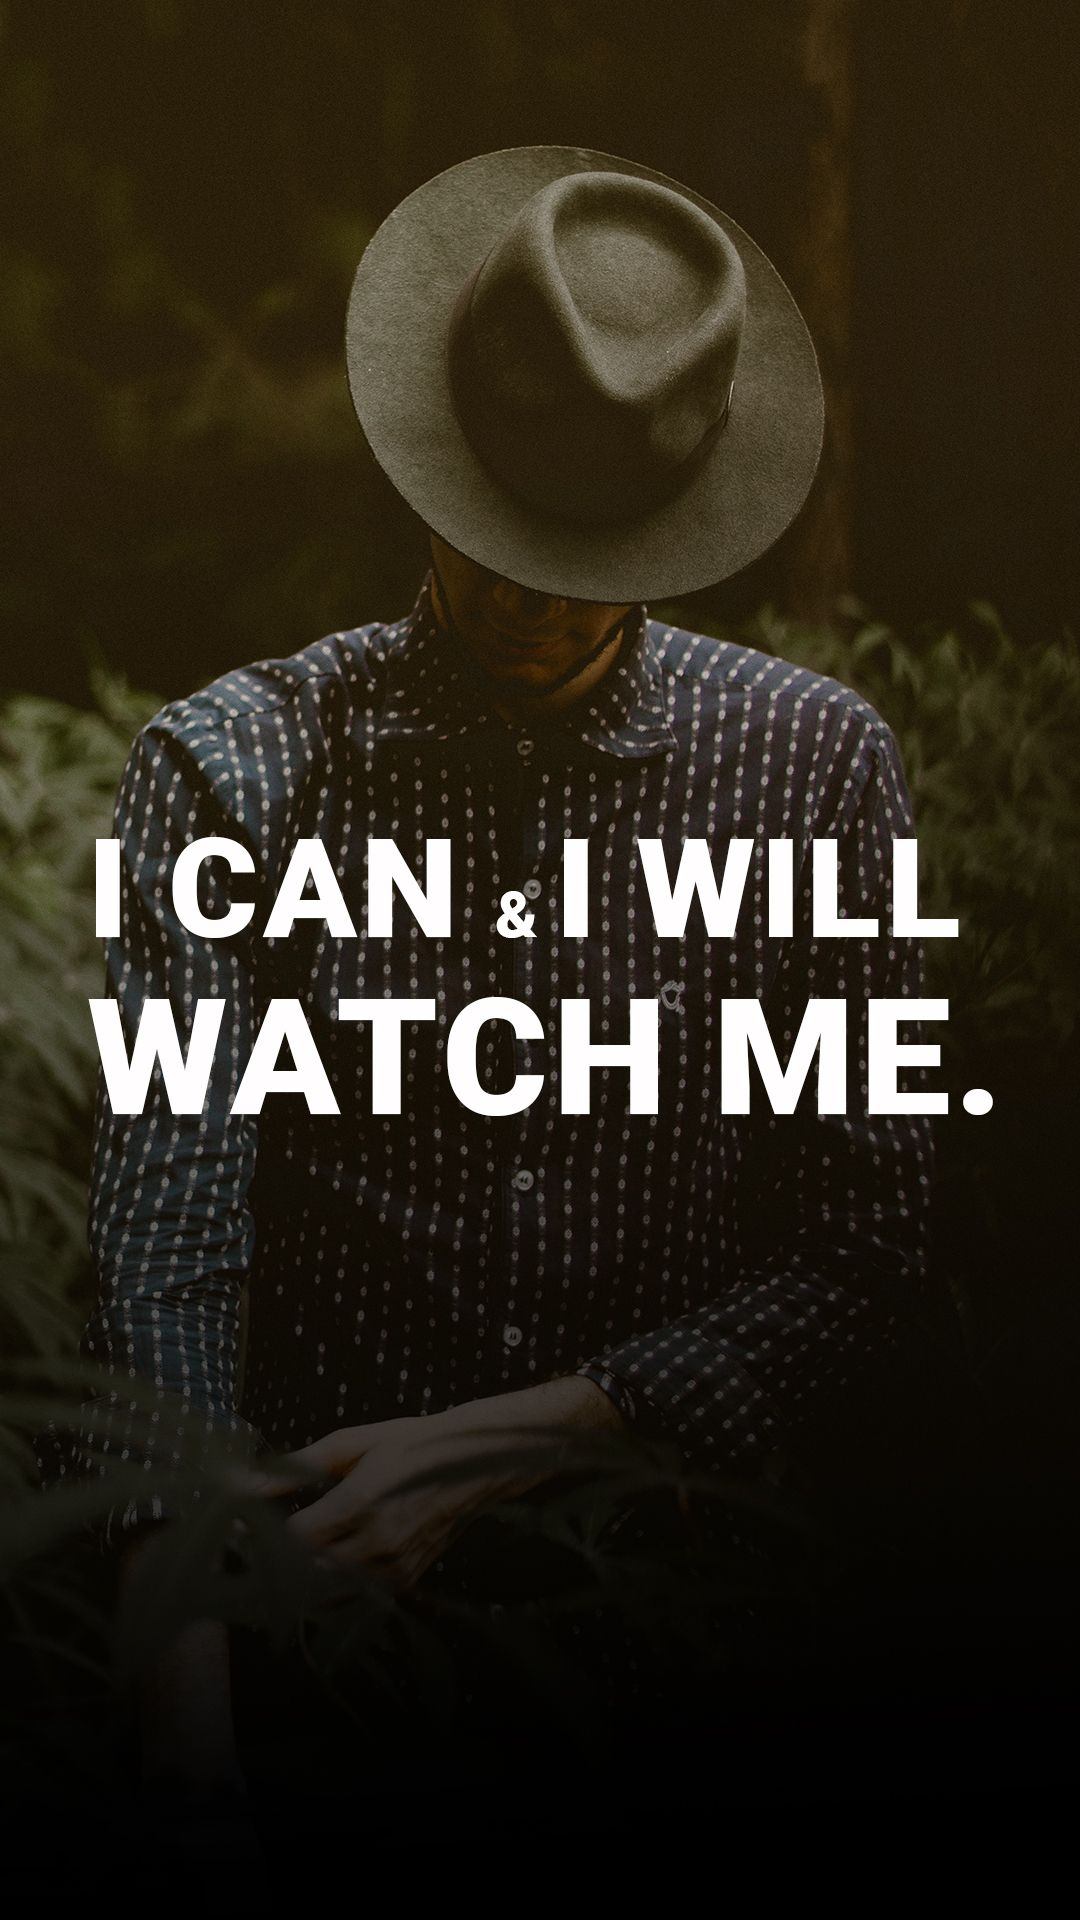 ( Motivational Quotes Motivational wallpapers